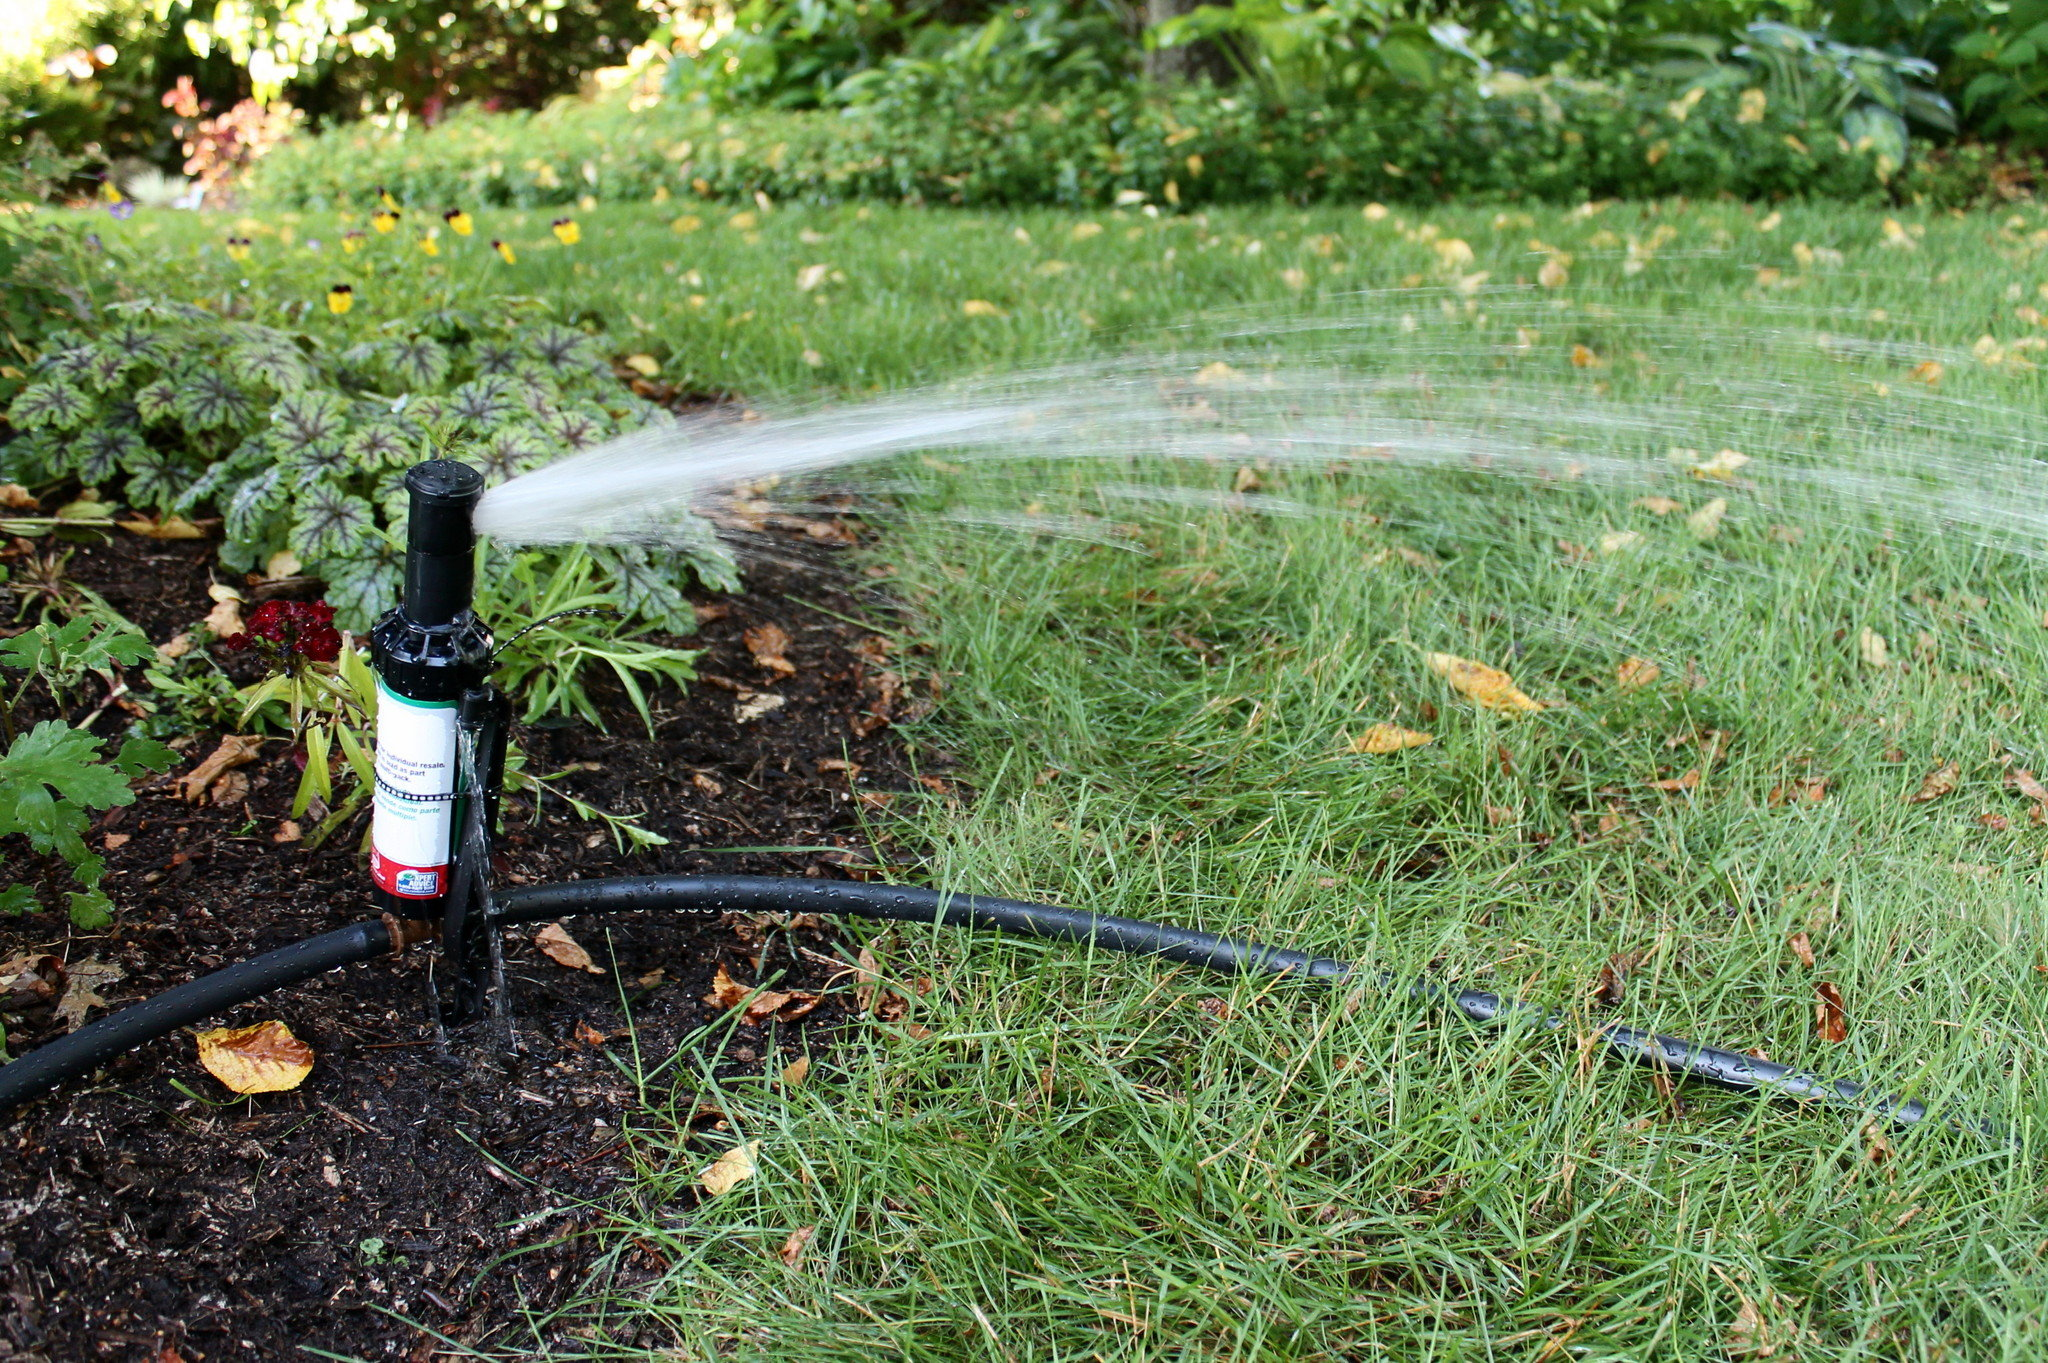 Home Sprinkler Installation